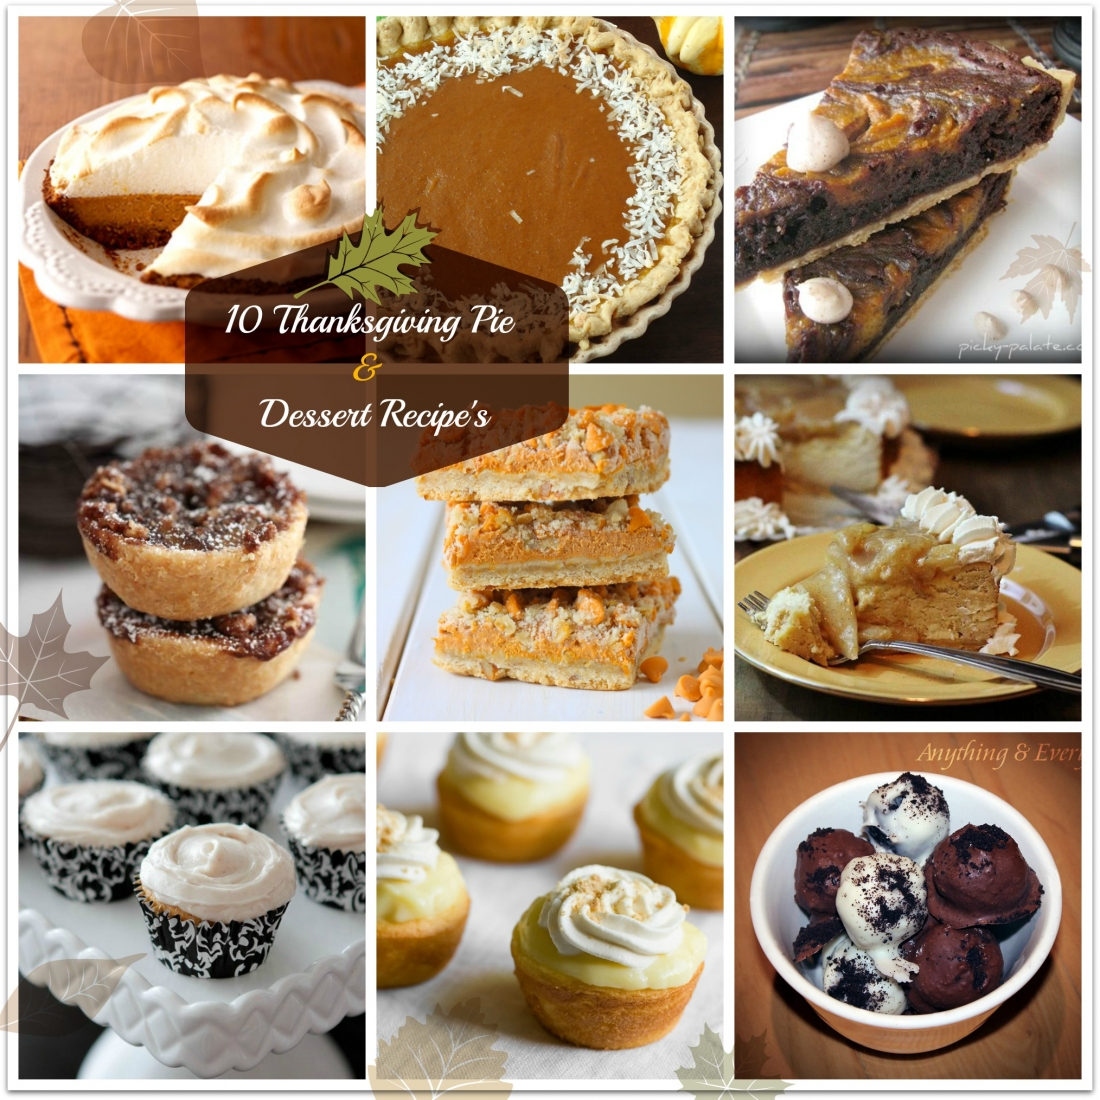 10 Thanksgiving Pie & Dessert Recipes